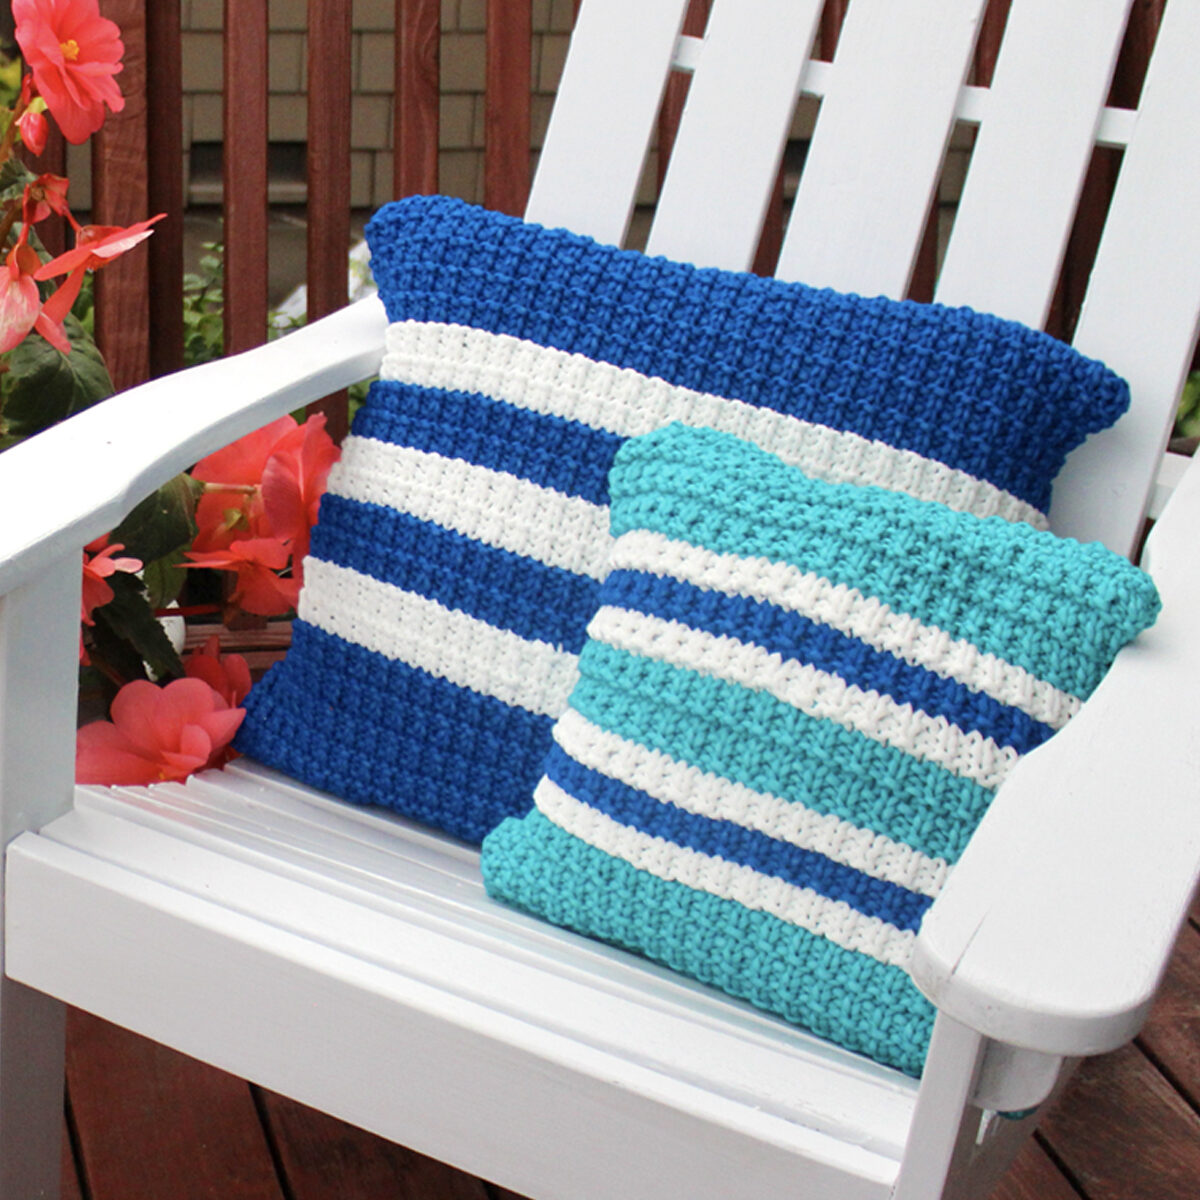 Two knitted pillows in hurdle stitch texture in shades of blue yarn color on a white adirondack chair.